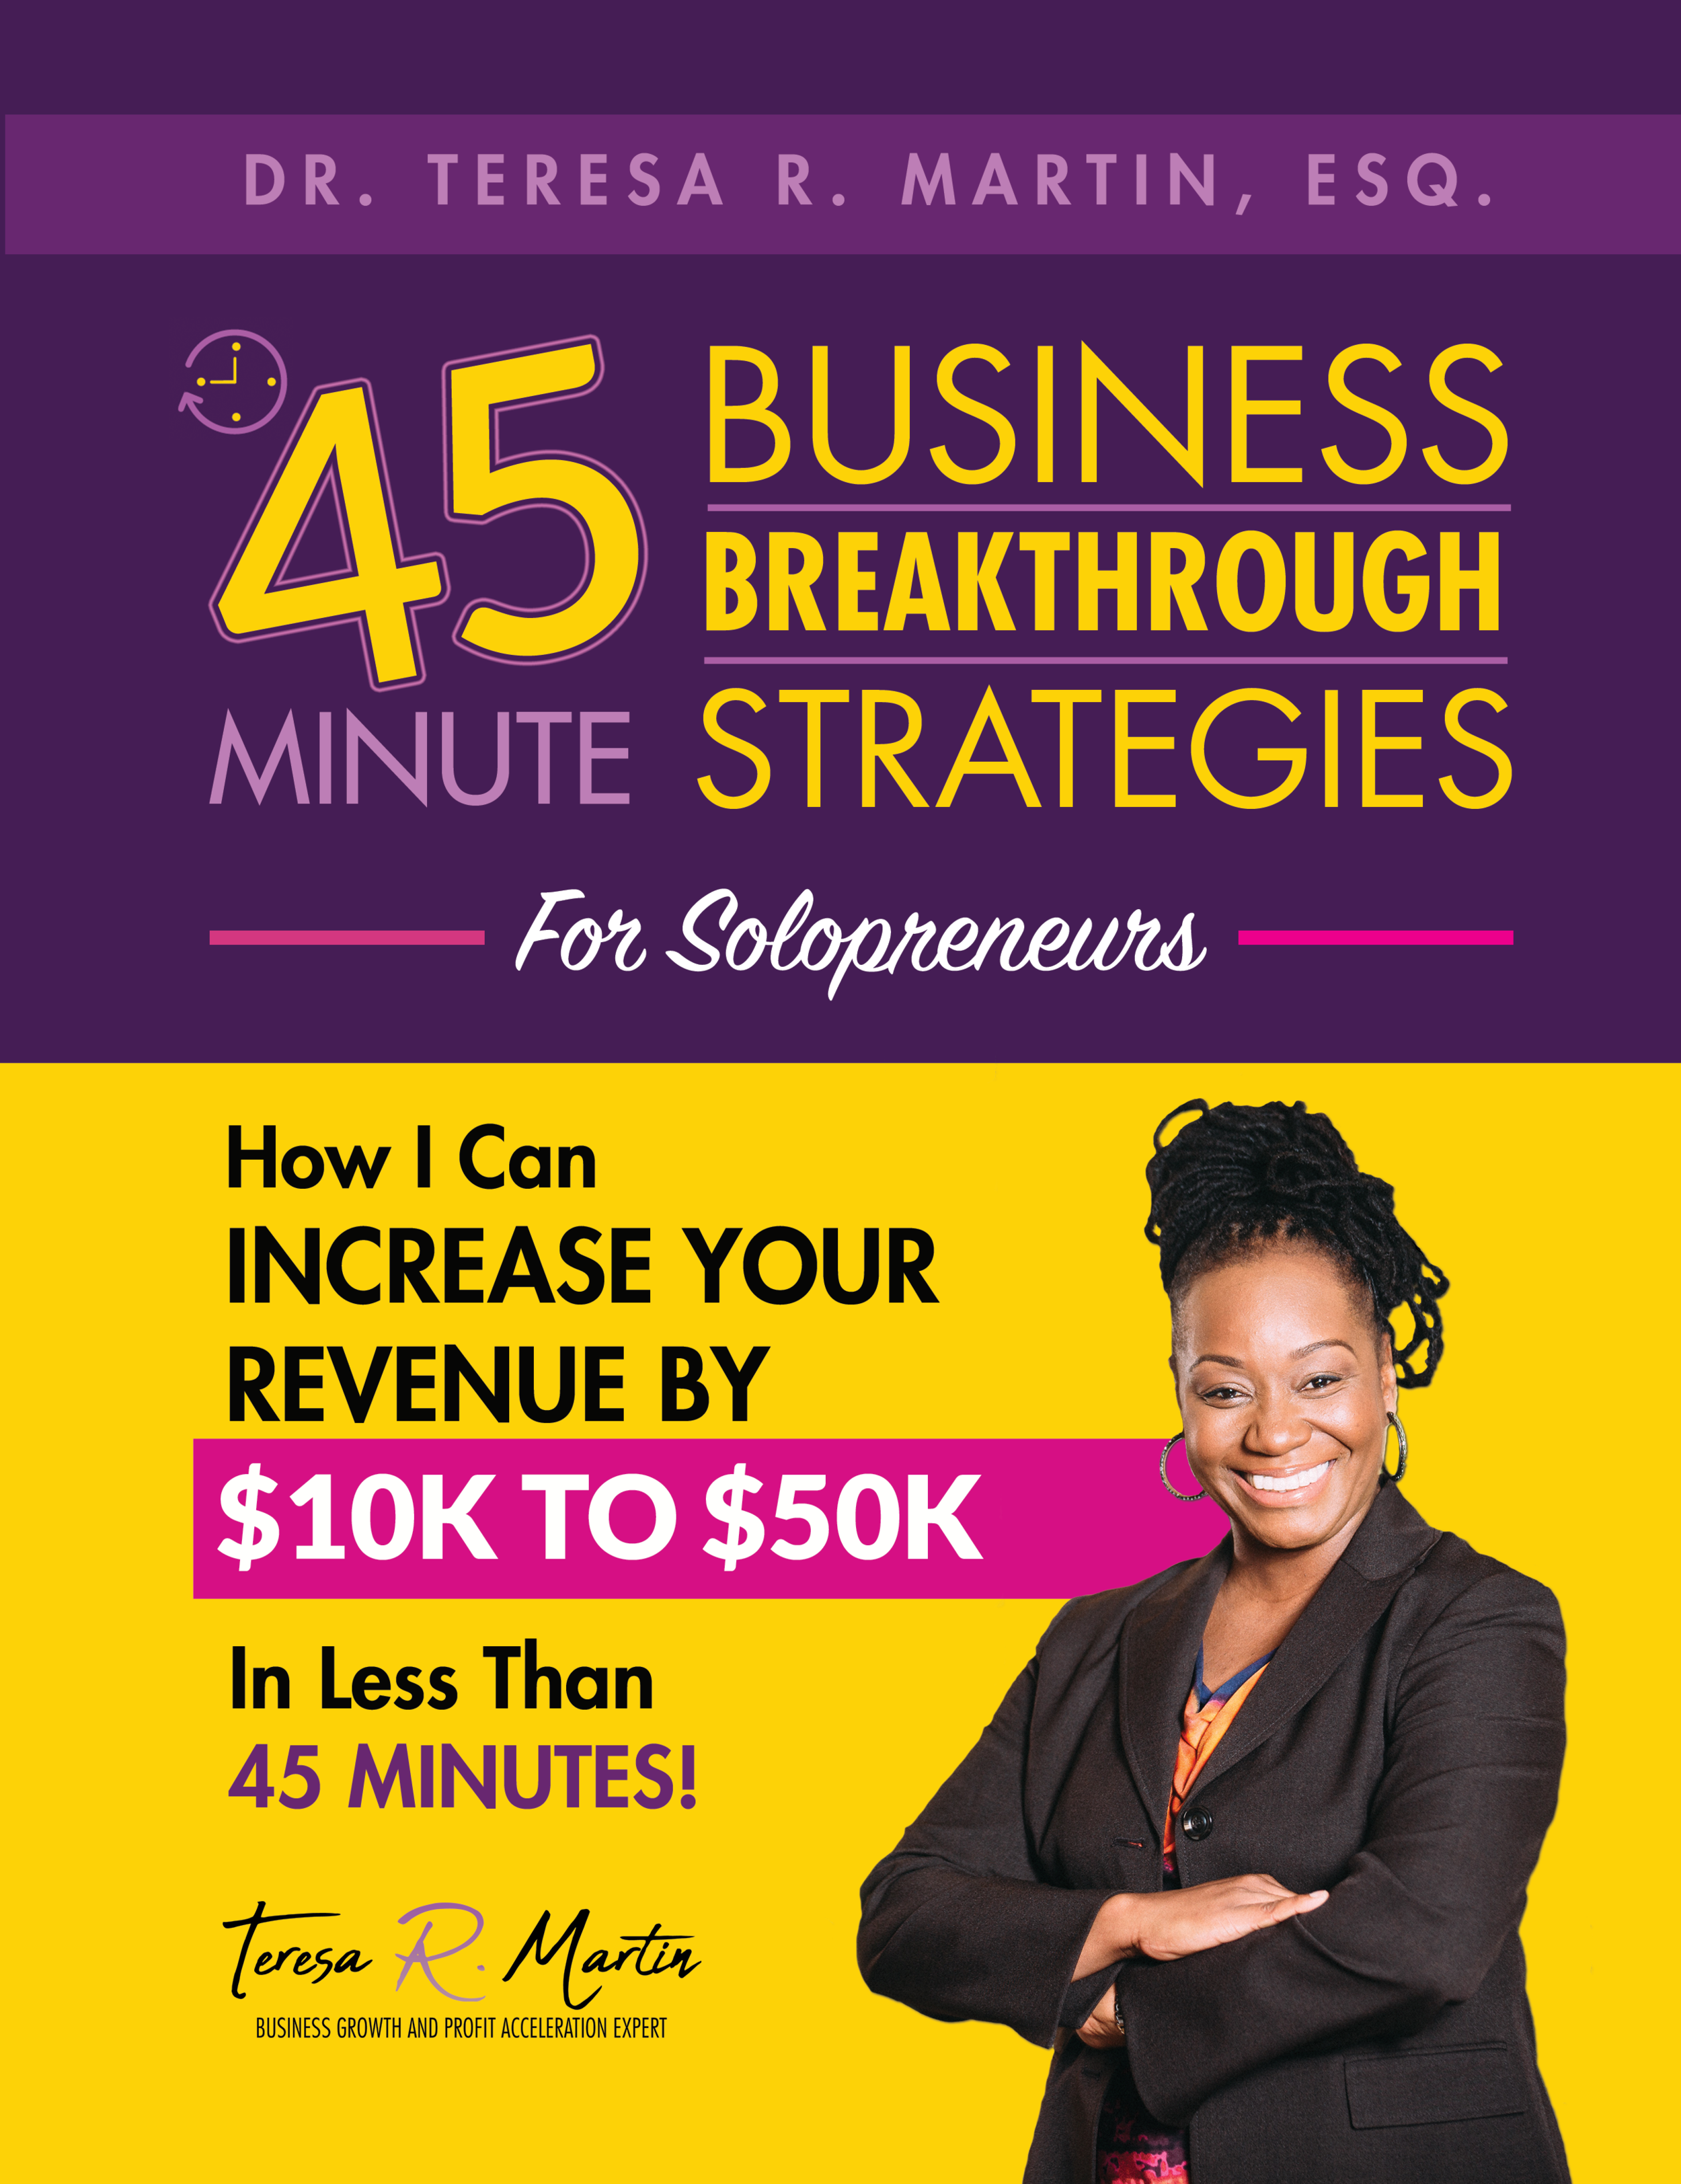 Business Breakthrough Strategies for Solopreneurs